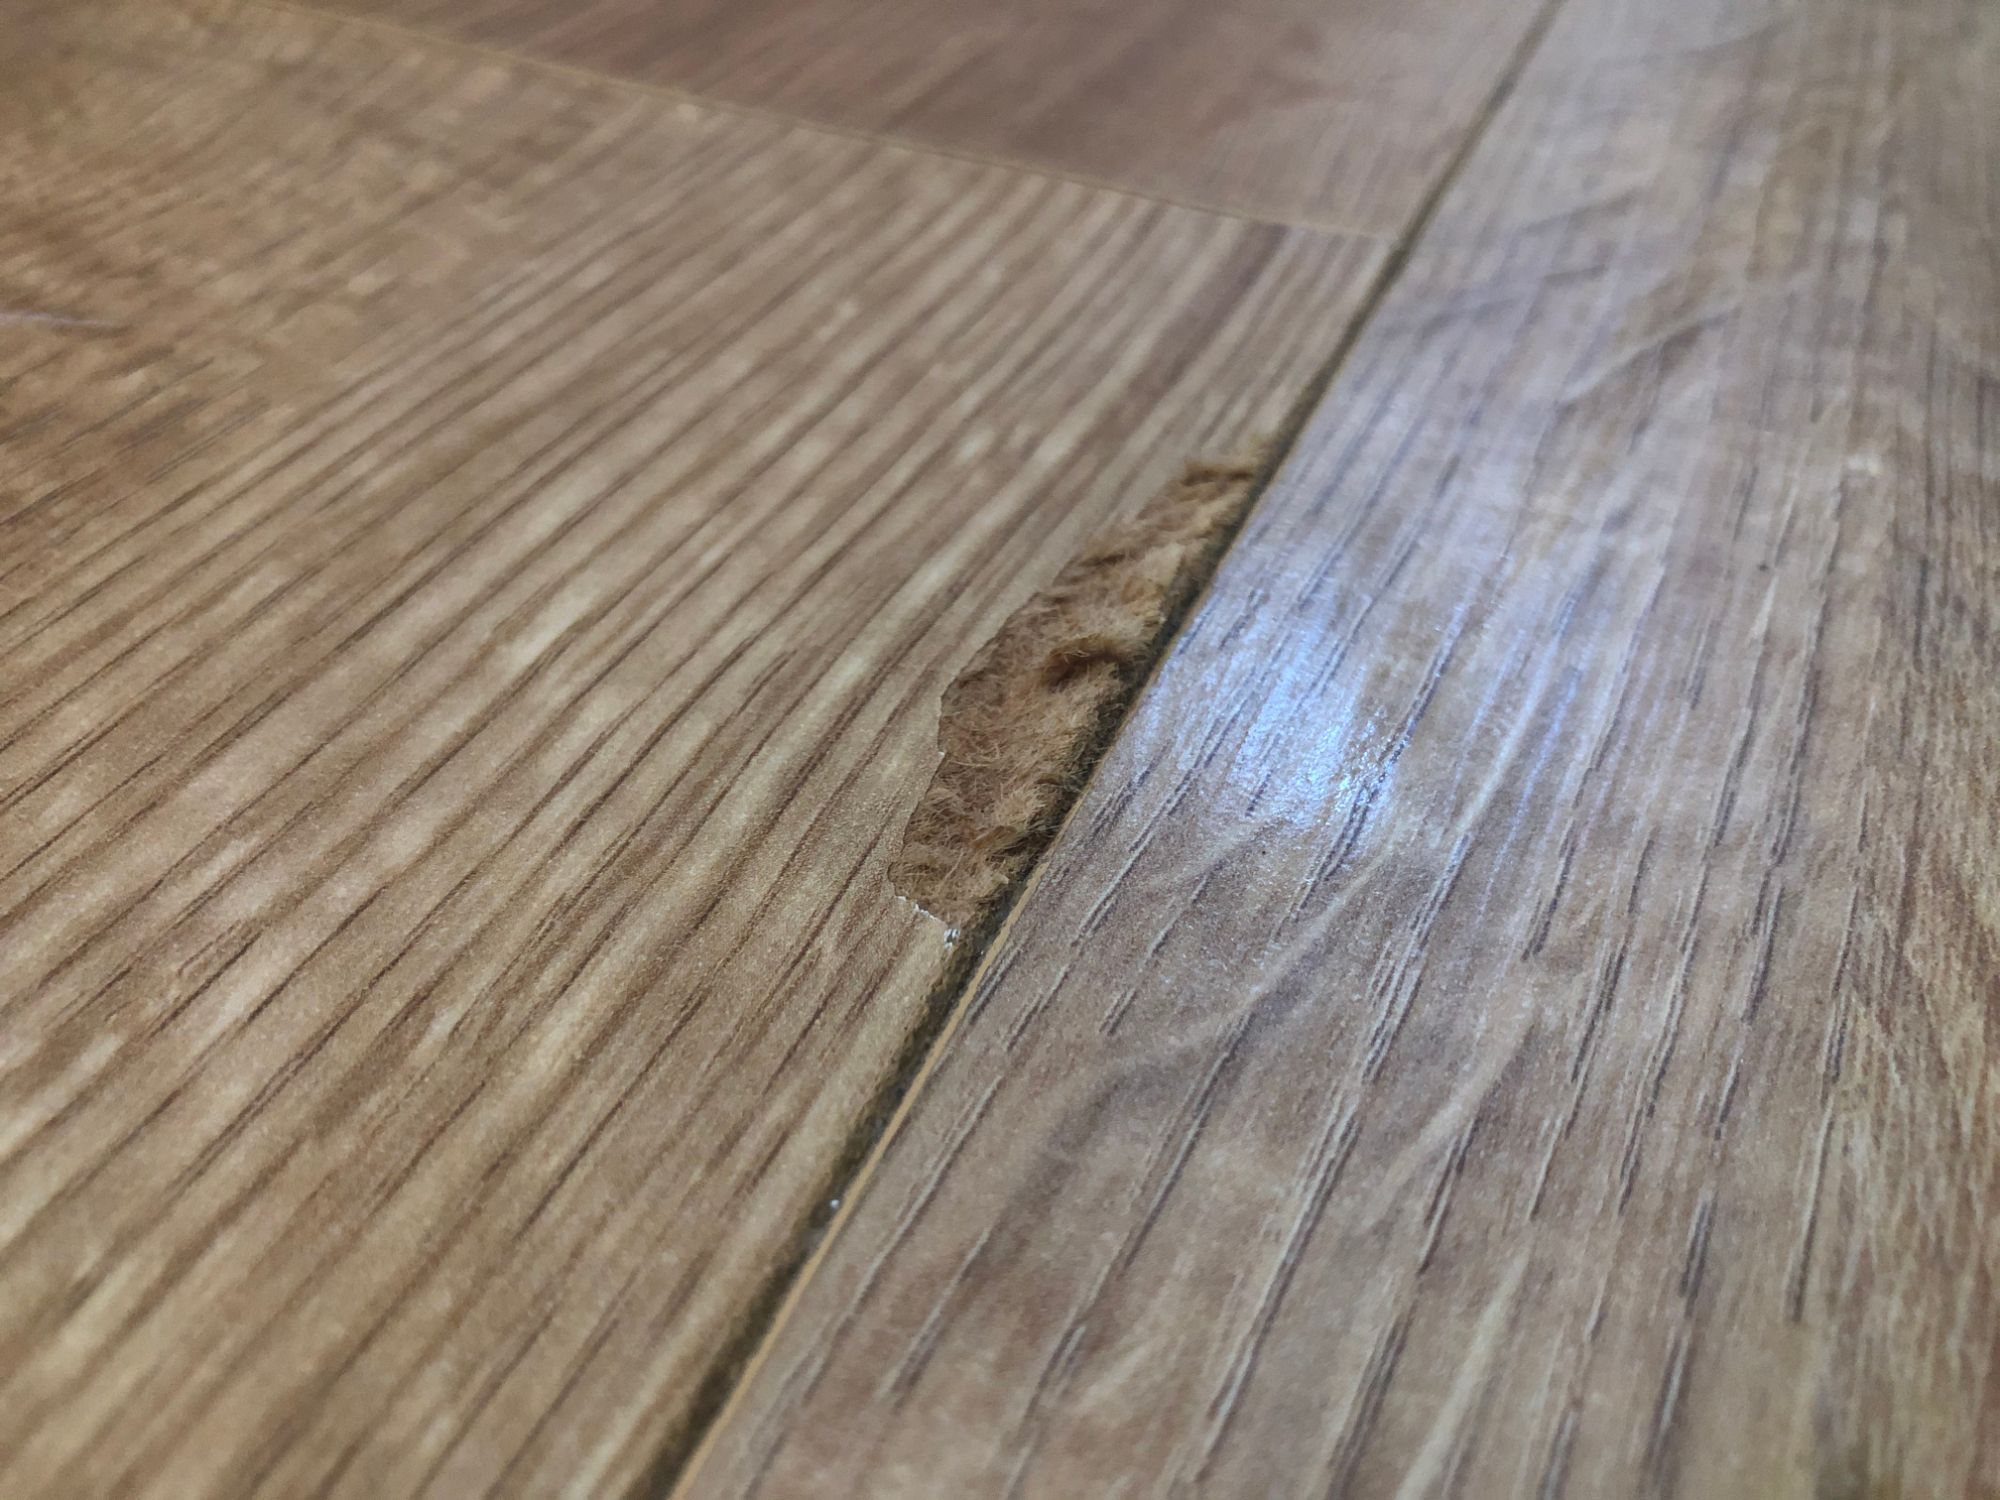 Free stock photo water damaged laminate floor